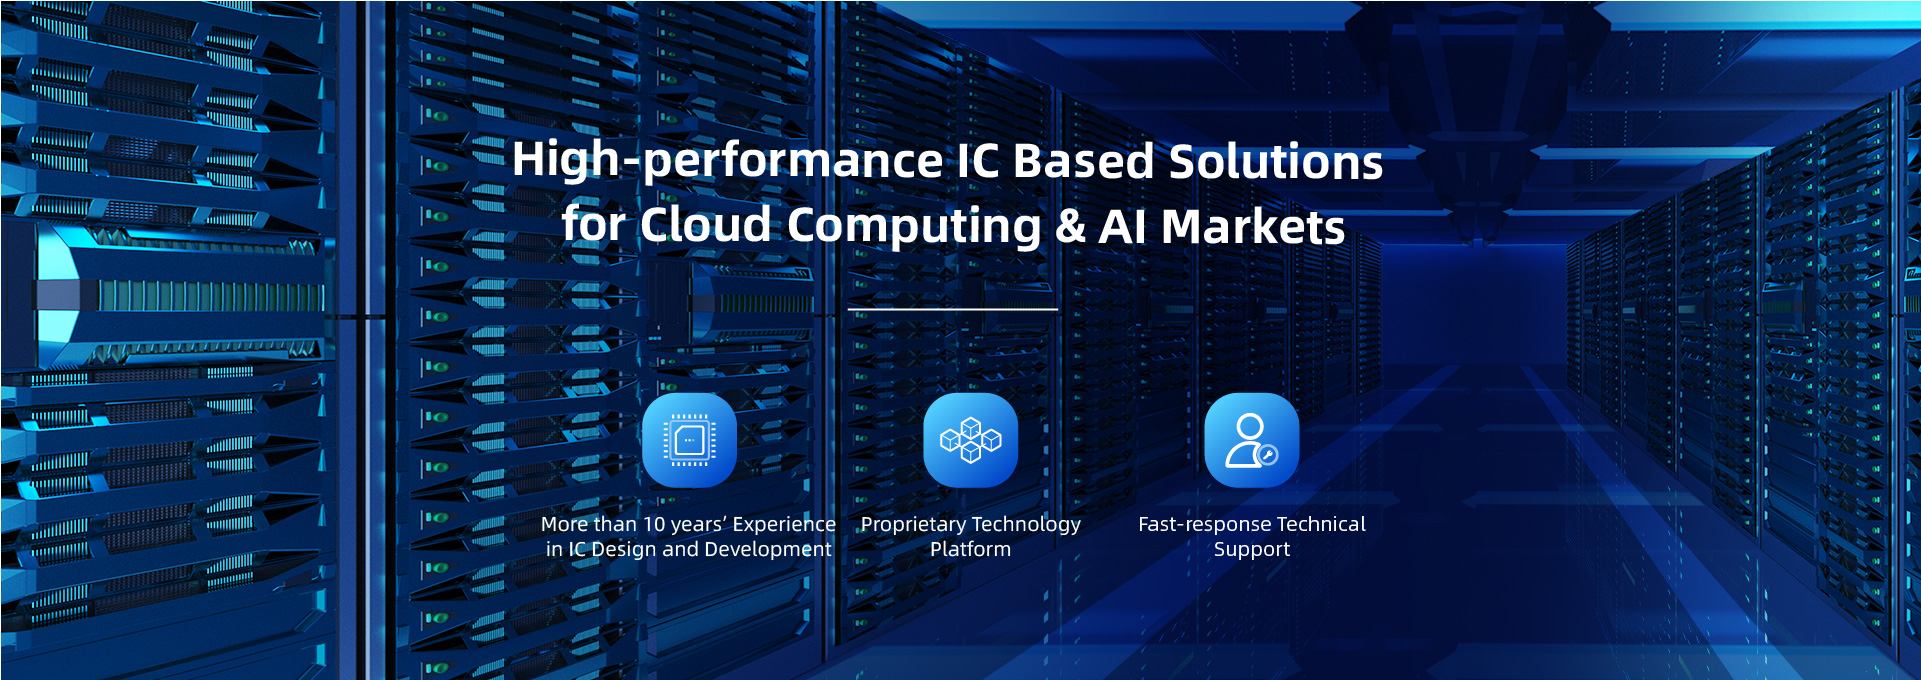 IC based solution vendor